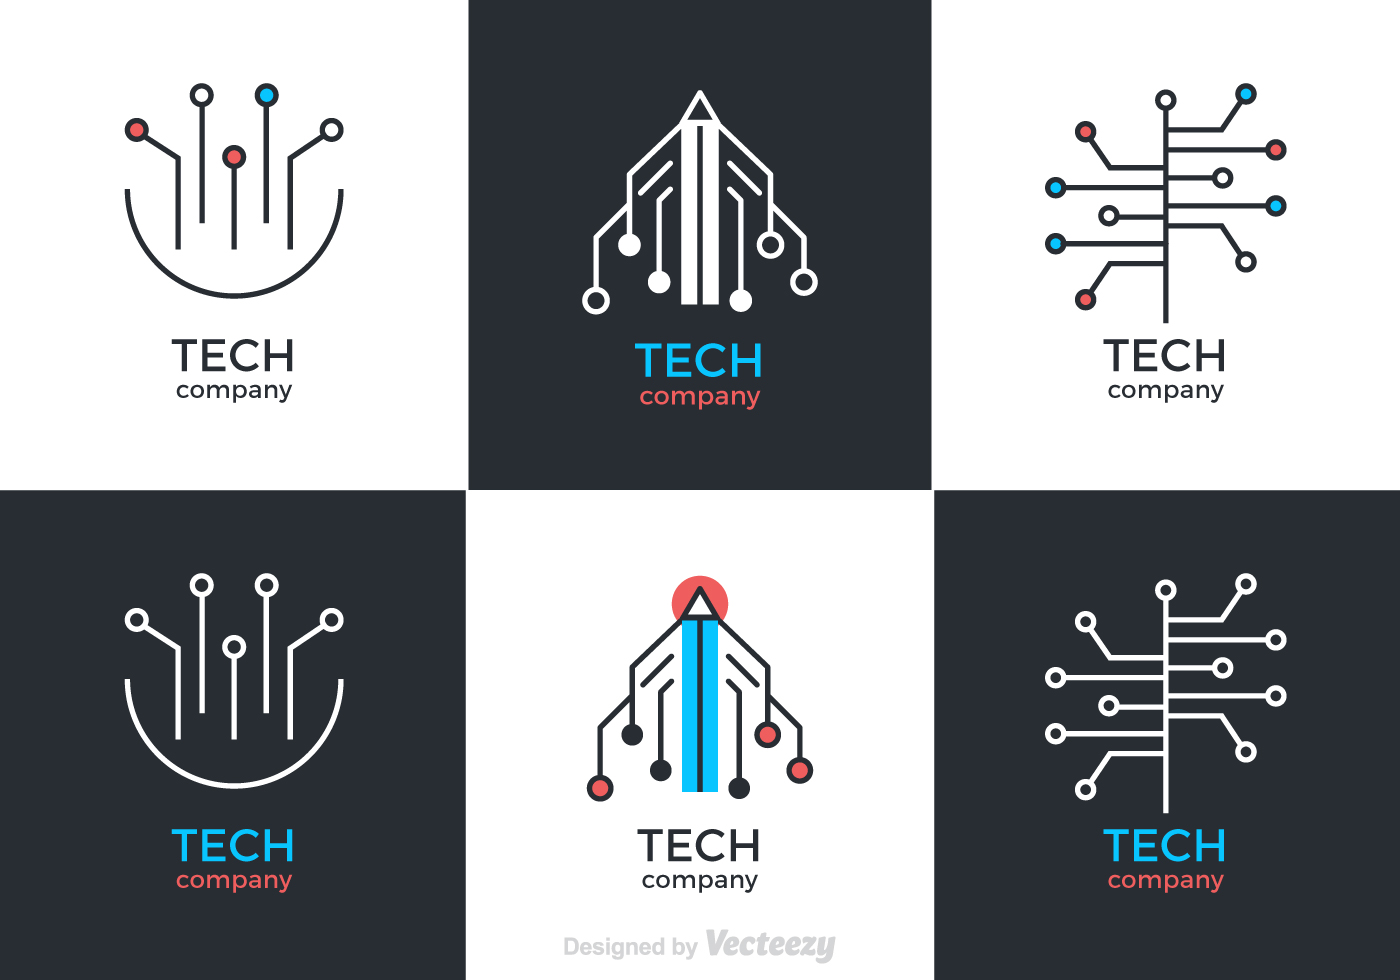 symbols technology vector circuit tech background information graphic graphics icon system vectors board vecteezy backgrounds computer line clipart electrical abstract